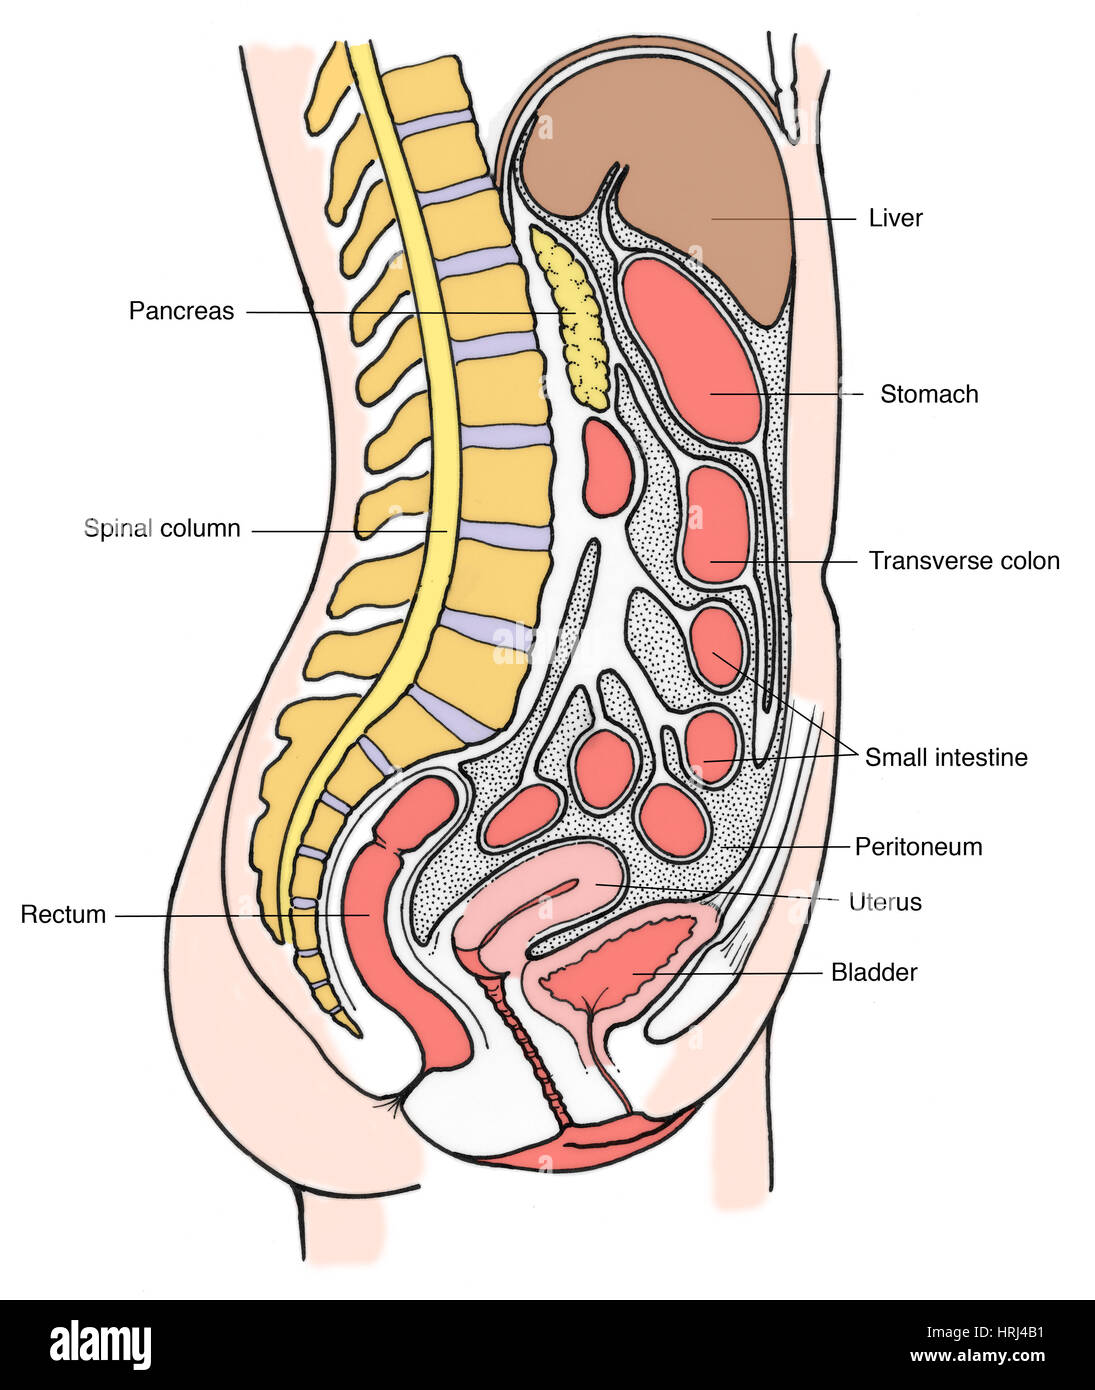 Illustration of Female Internal Organs Stock Photo: 135008245 - Alamy